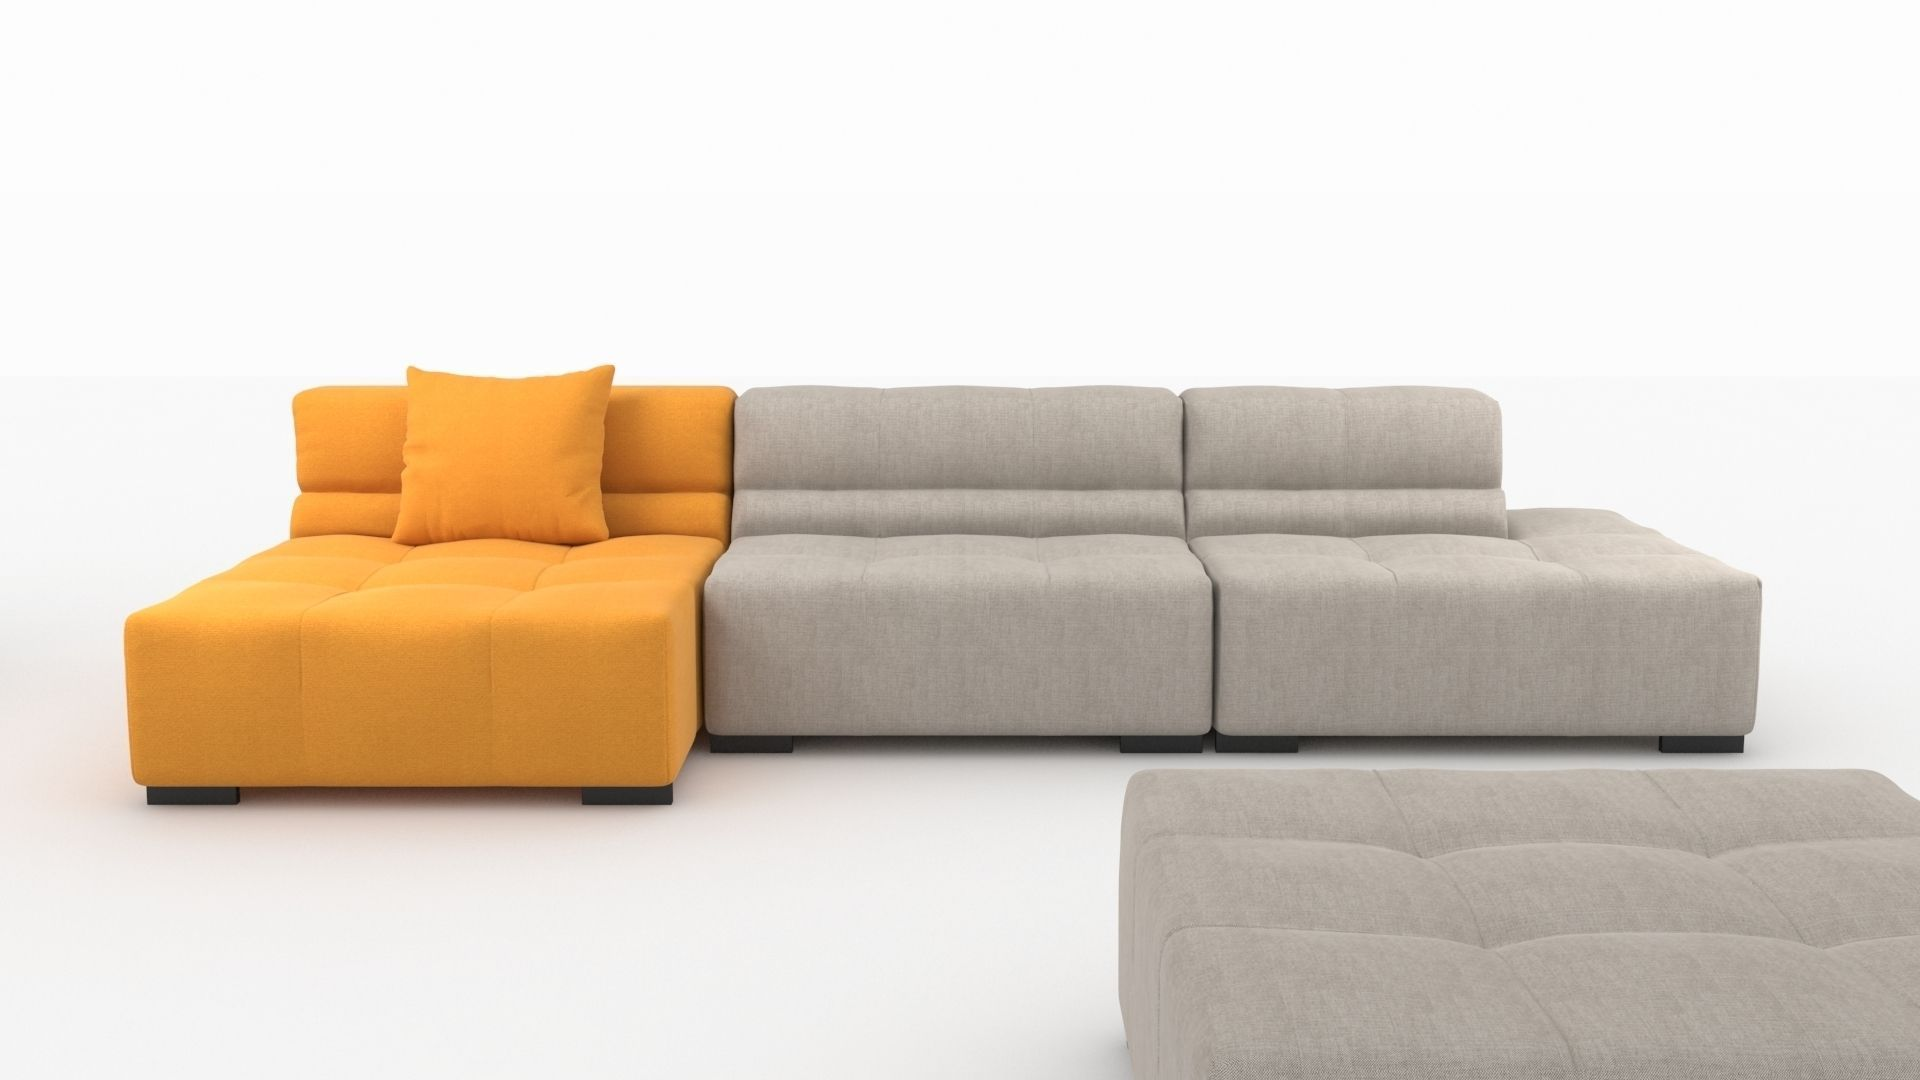 Tufty Time sofa by bb Italia 3D Model MAX OBJ 3DS FBX MTL : CGTrader.com